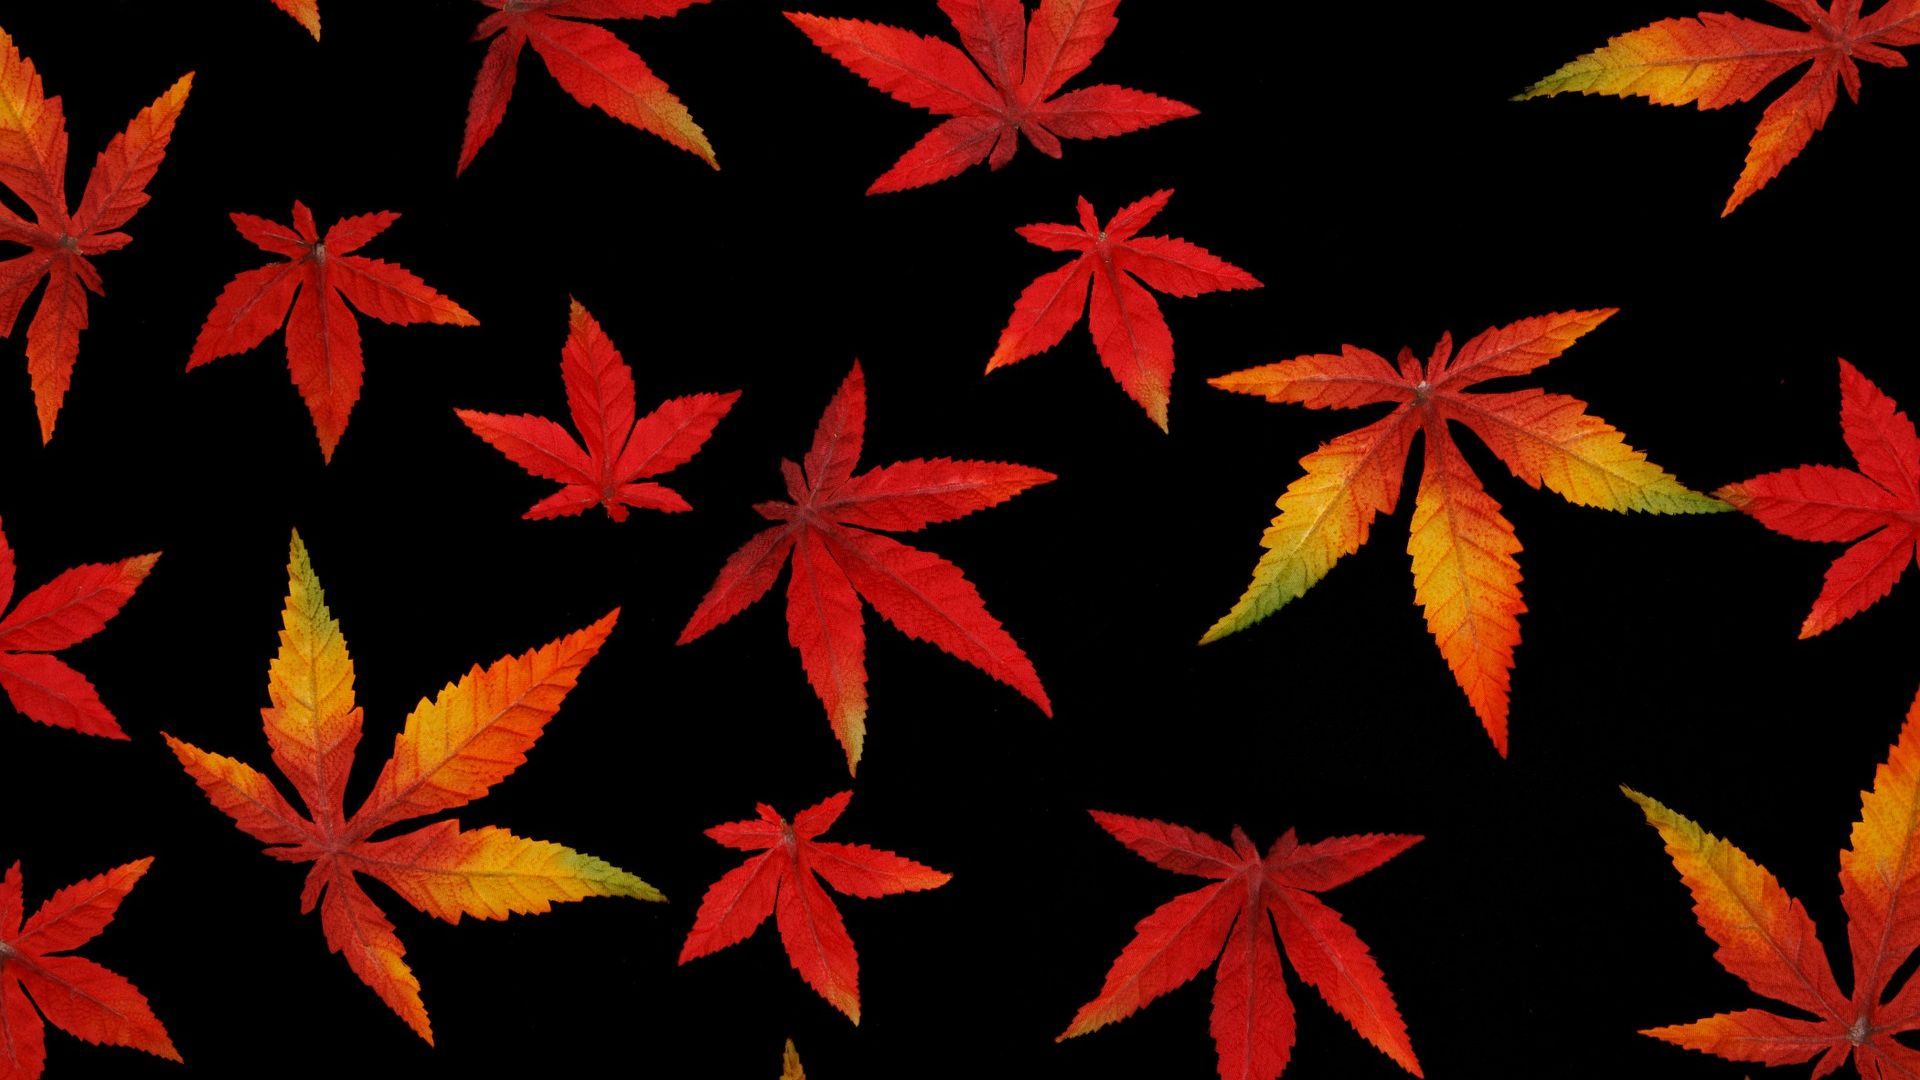 1920x1080 Abstract Autumn Leaf with Black Background Wallpaper ...